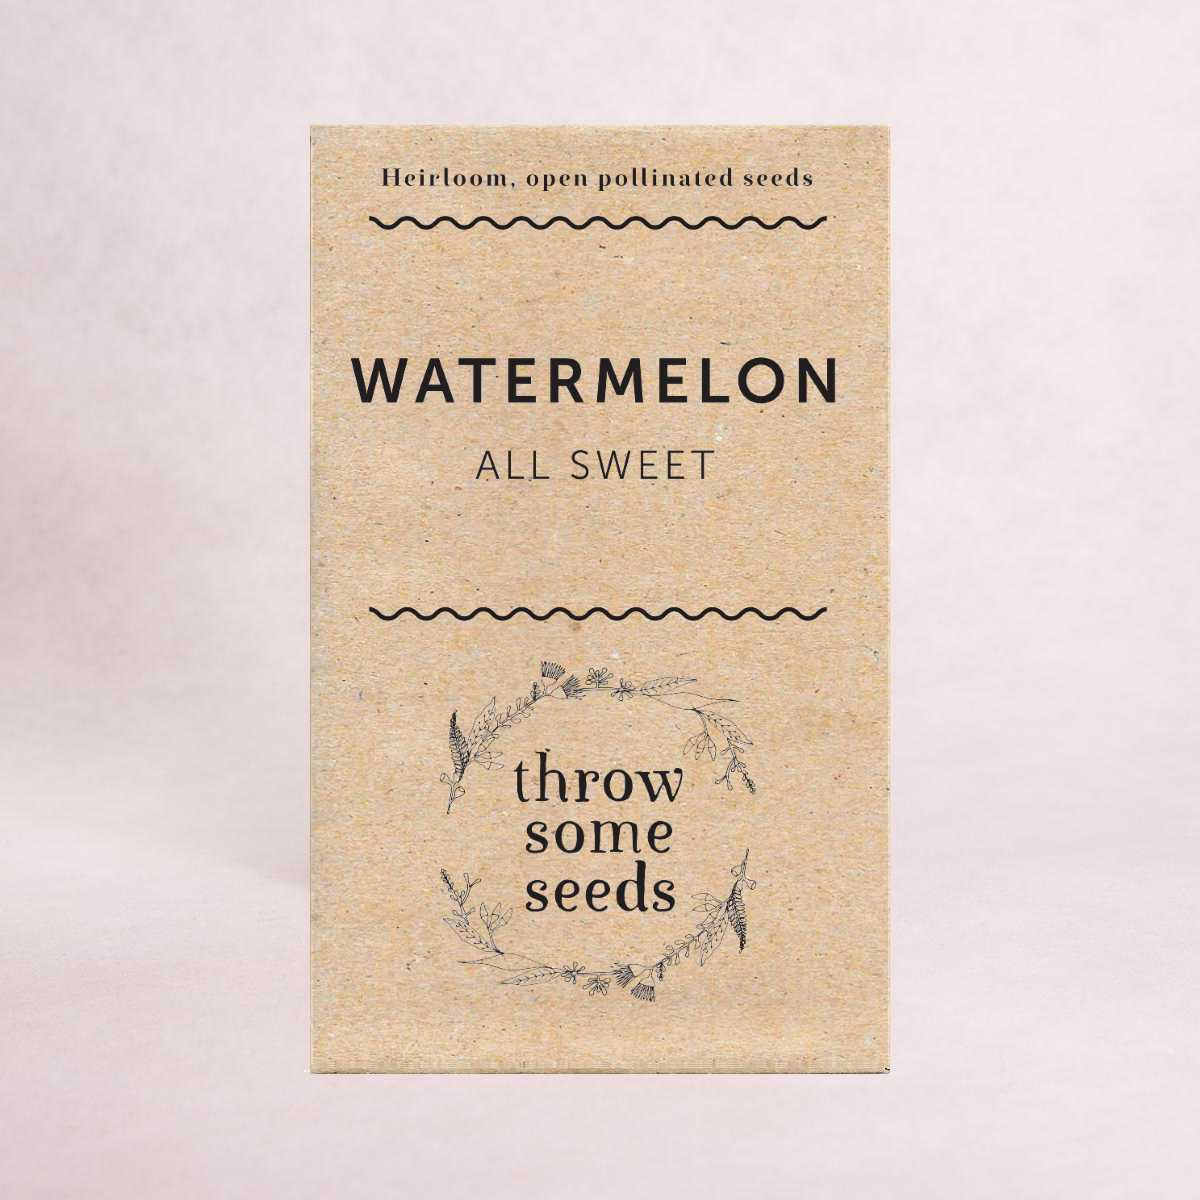 Watermelon (All Sweet) Seeds - Seeds - Throw Some Seeds - Australian gardening gifts and eco products online!